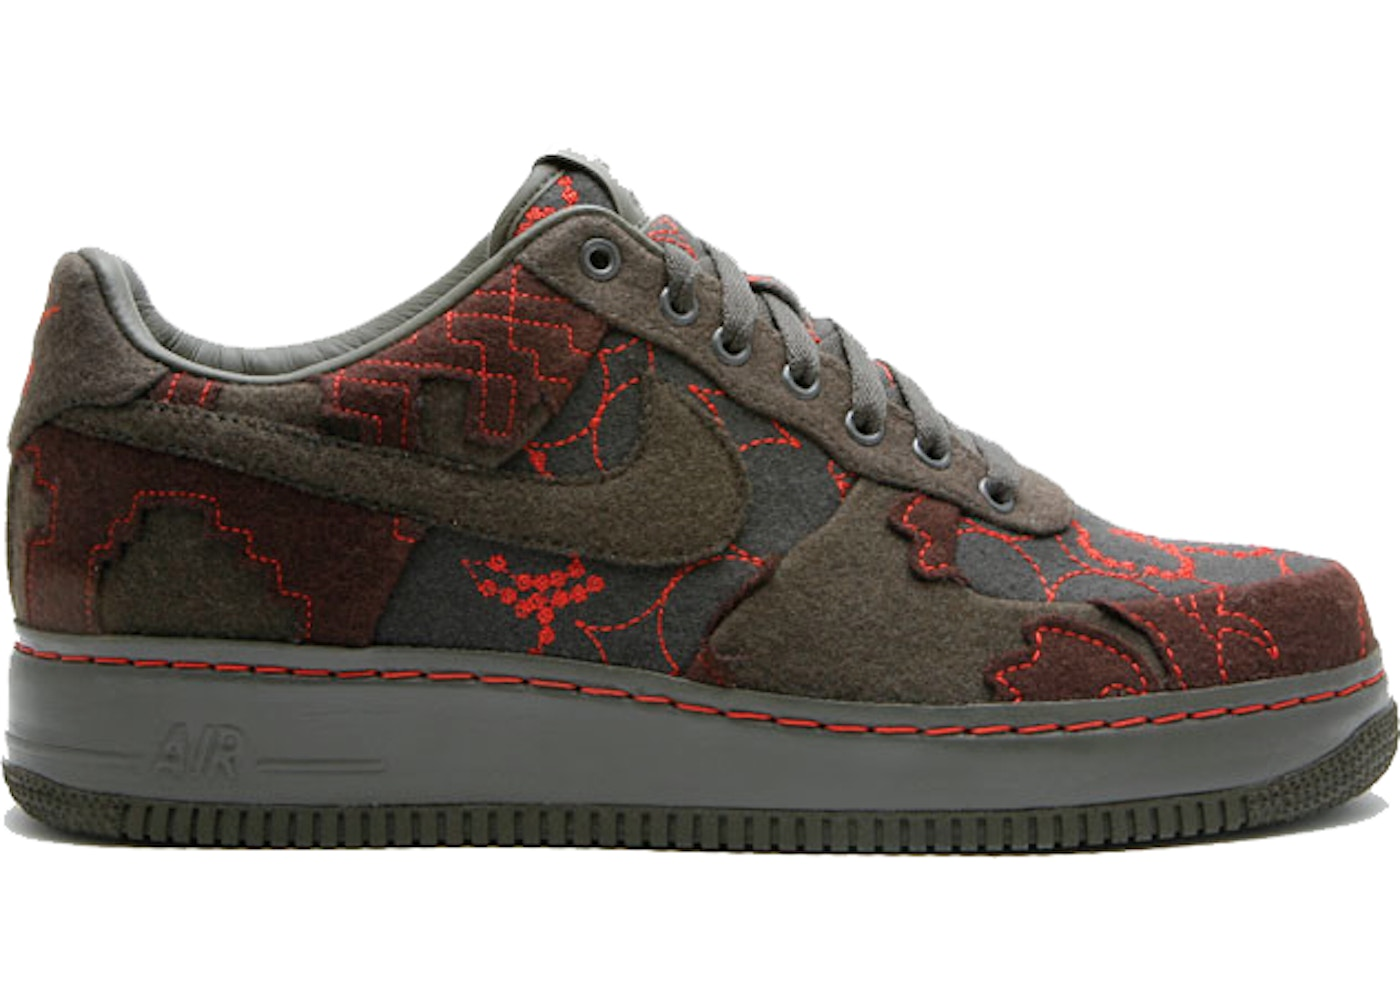 new product 958d9 dae0f Air Force 1 Low Maharam Moss - 363171-031